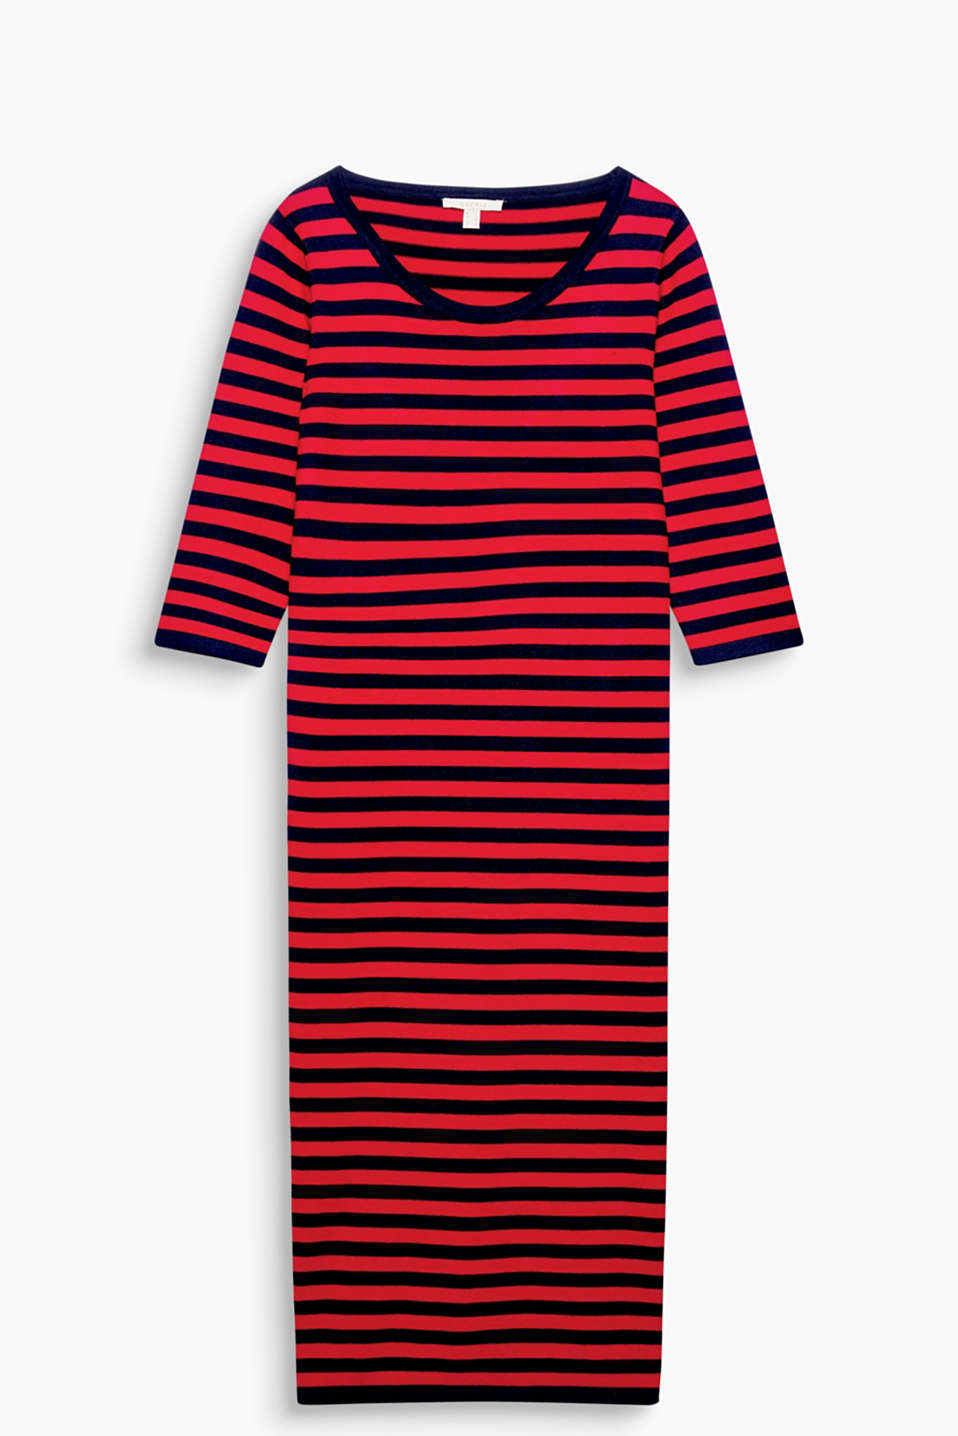 Compact knit, modern chic: figure-enhancing dress with new block stripes and a contemporary midi length